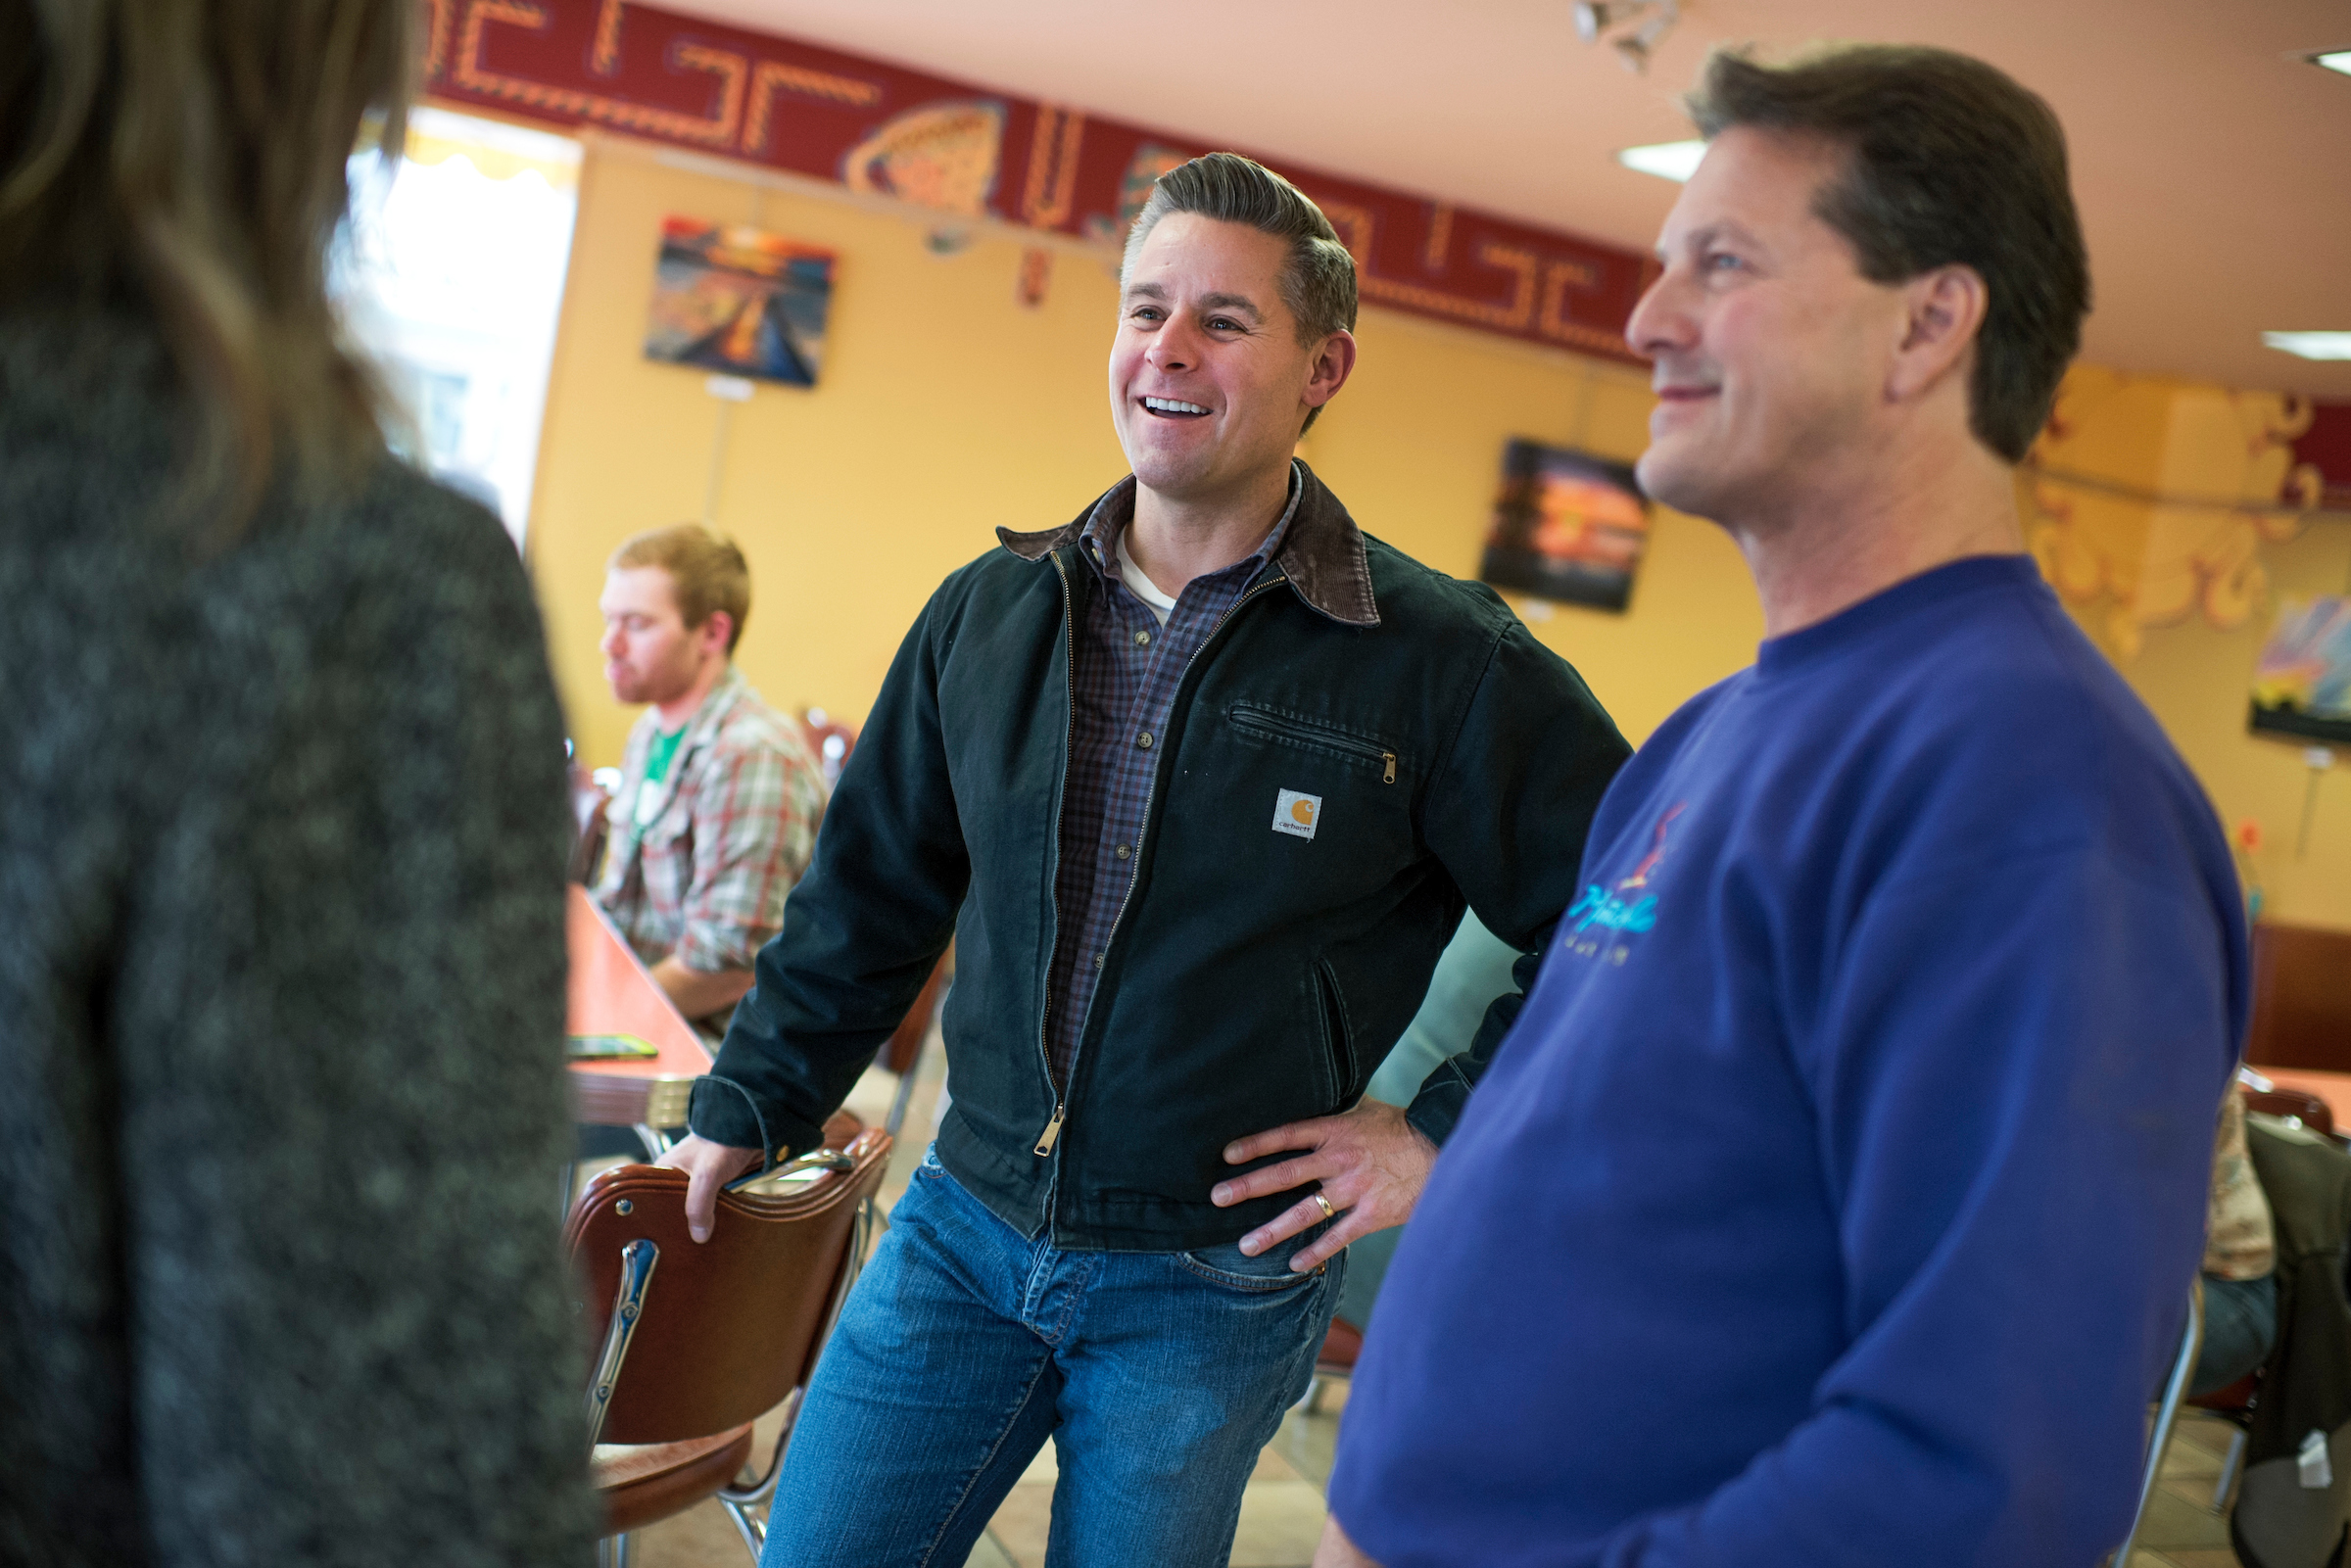 Stewart Mills, center, Republican candidate for Minnesota's 8th Congressional District, talks with voters at the Brewed Awakenings coffee shop in Grand Rapids, Minn. (Tom Williams/CQ Roll Call)